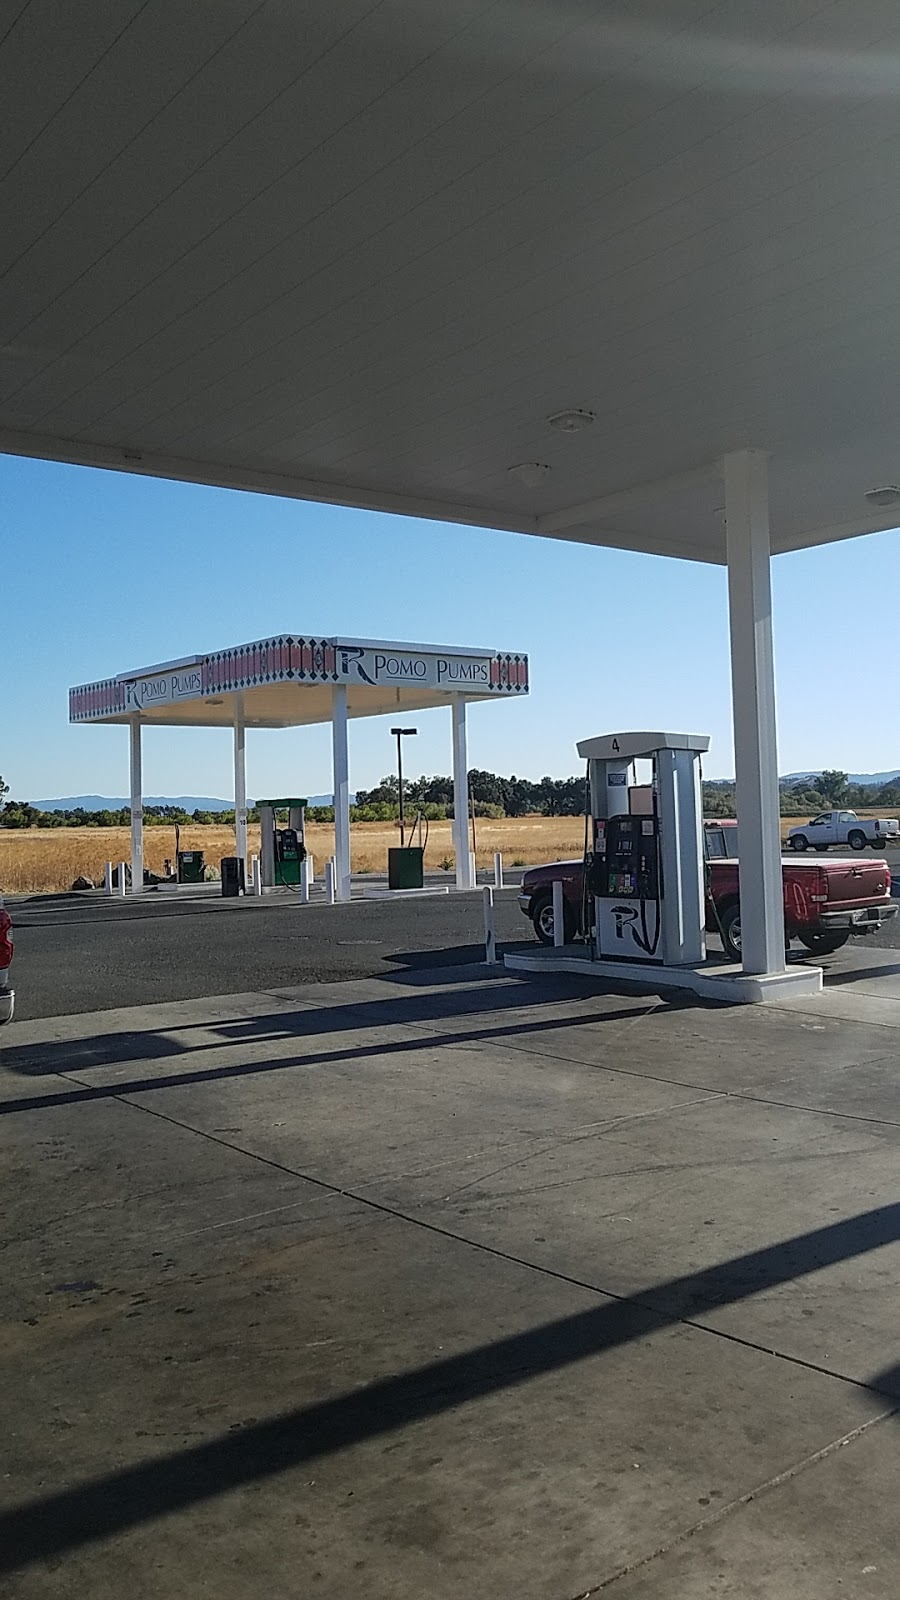 R Pomo Pumps   convenience store   1585 State Hwy 20, Upper Lake, CA 95485, USA   7072759704 OR +1 707-275-9704